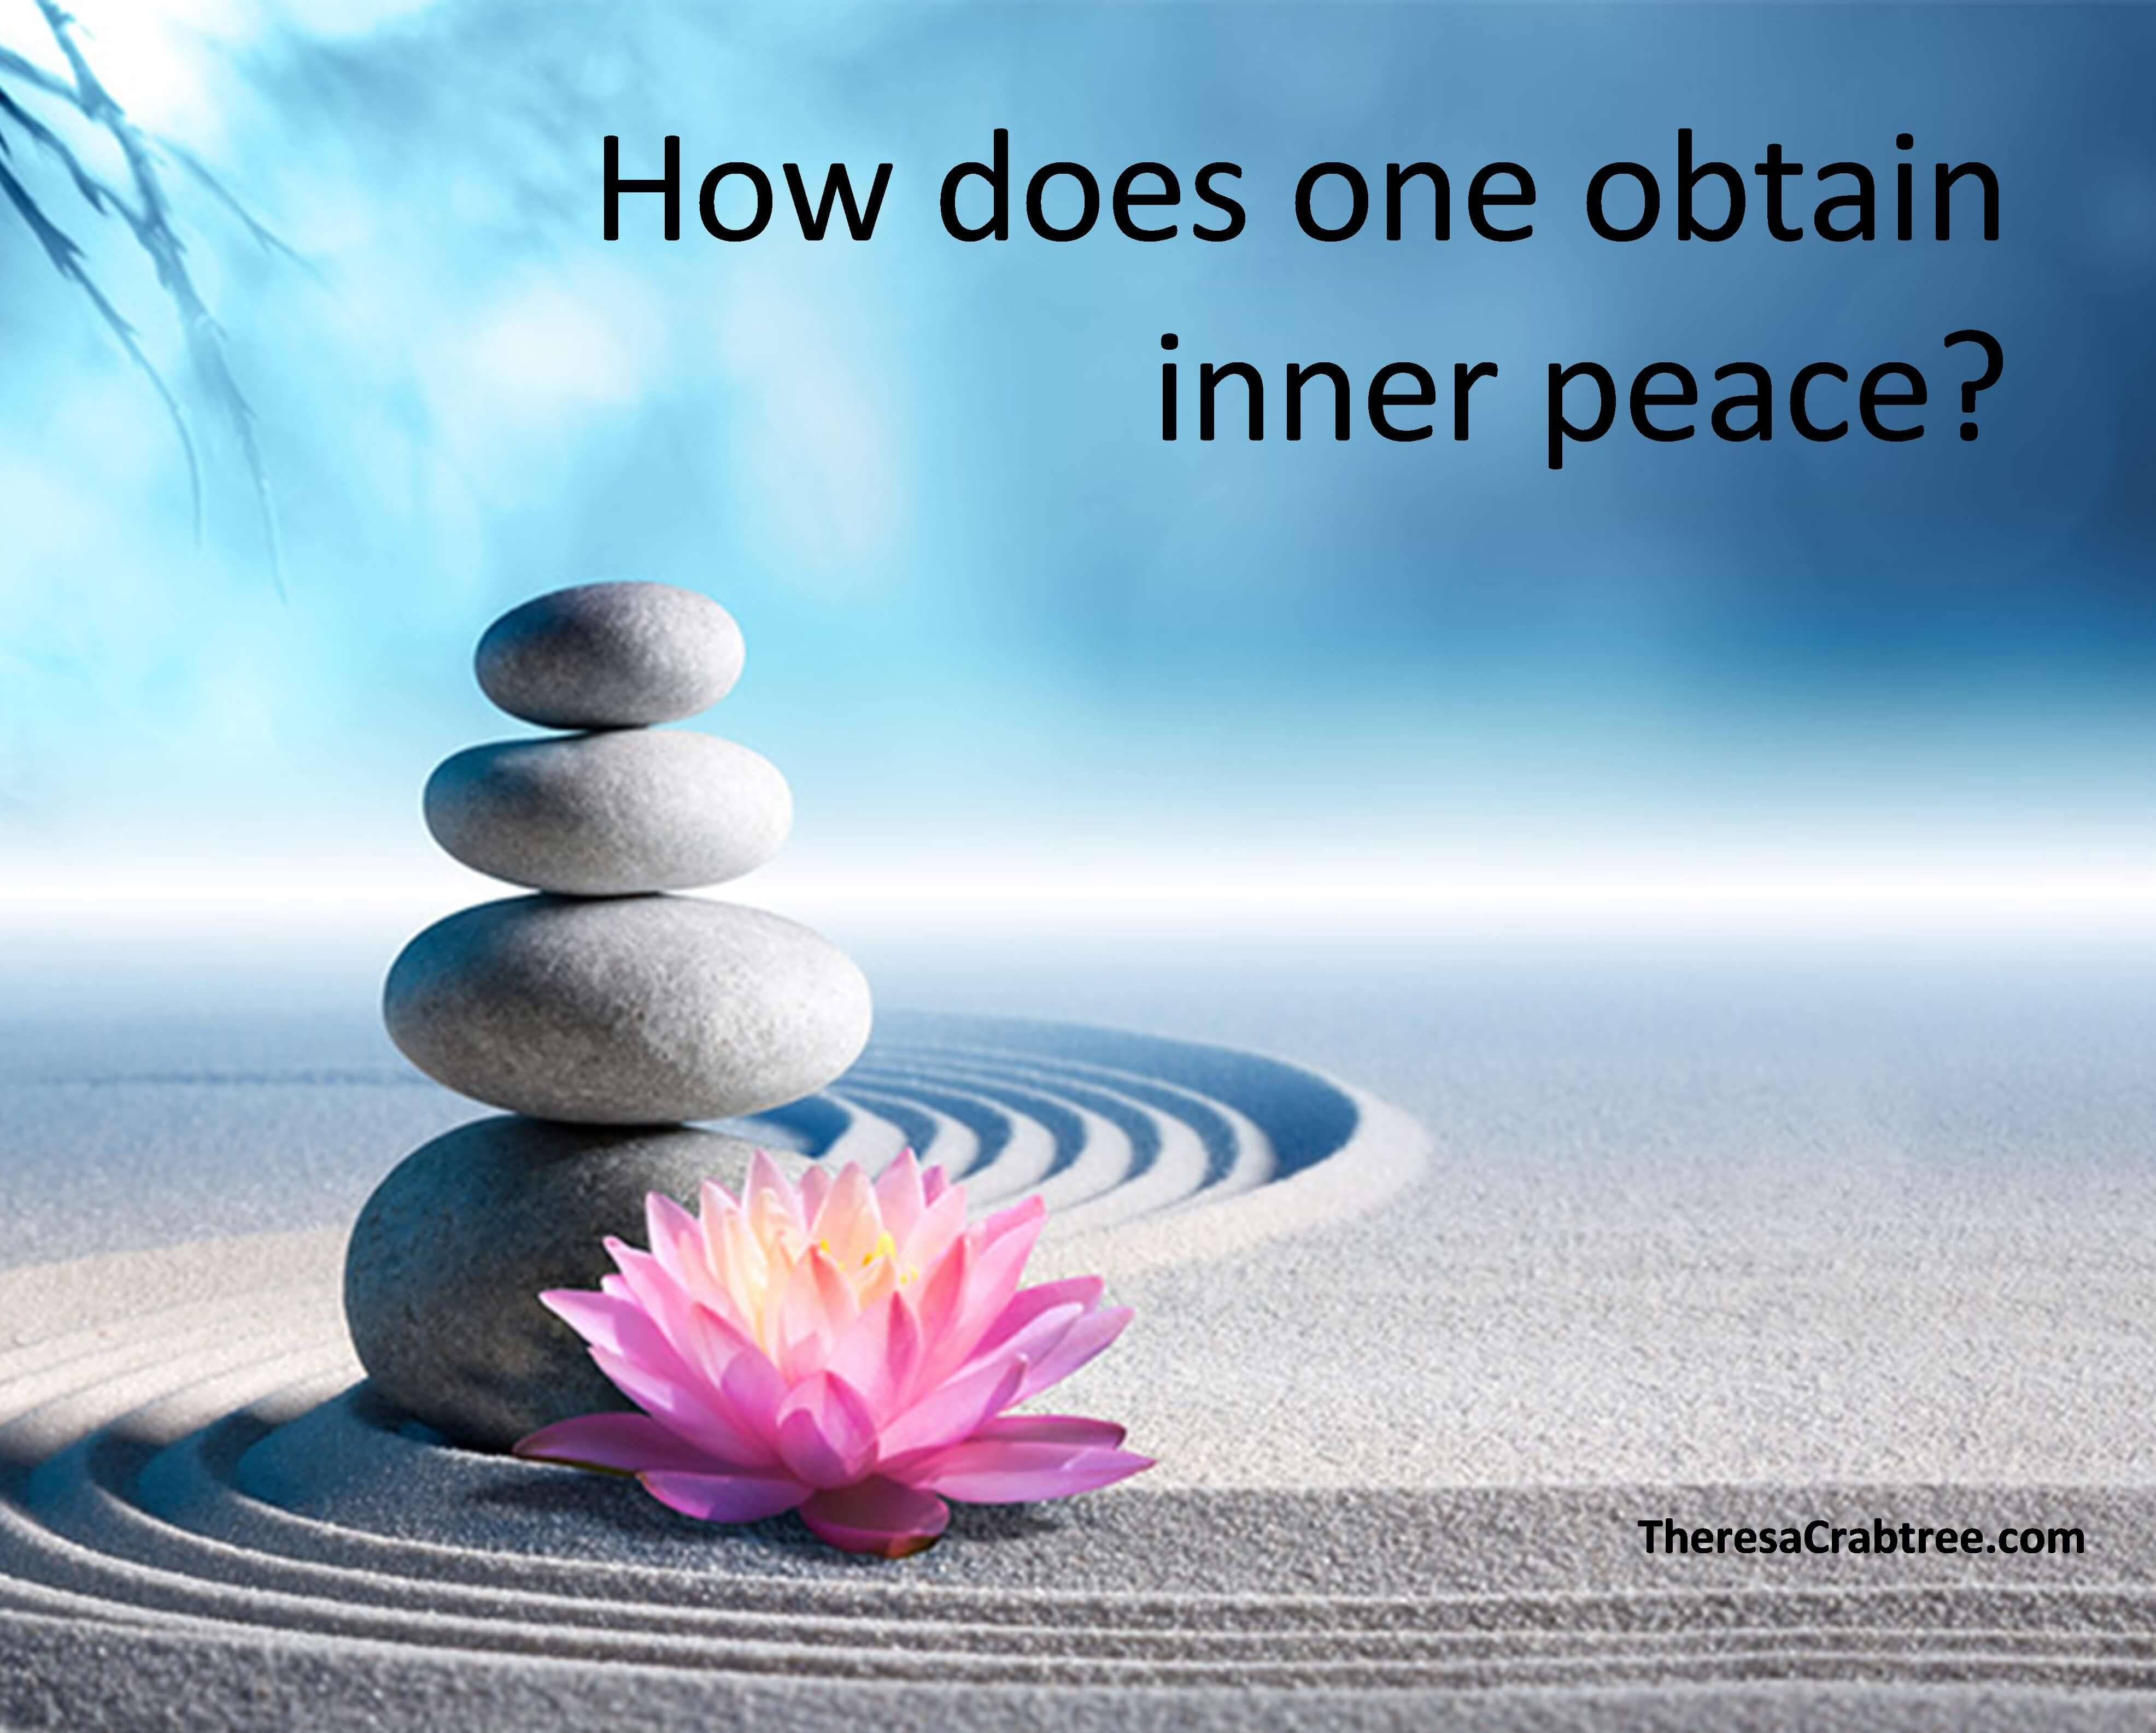 How do you obtain inner peace?